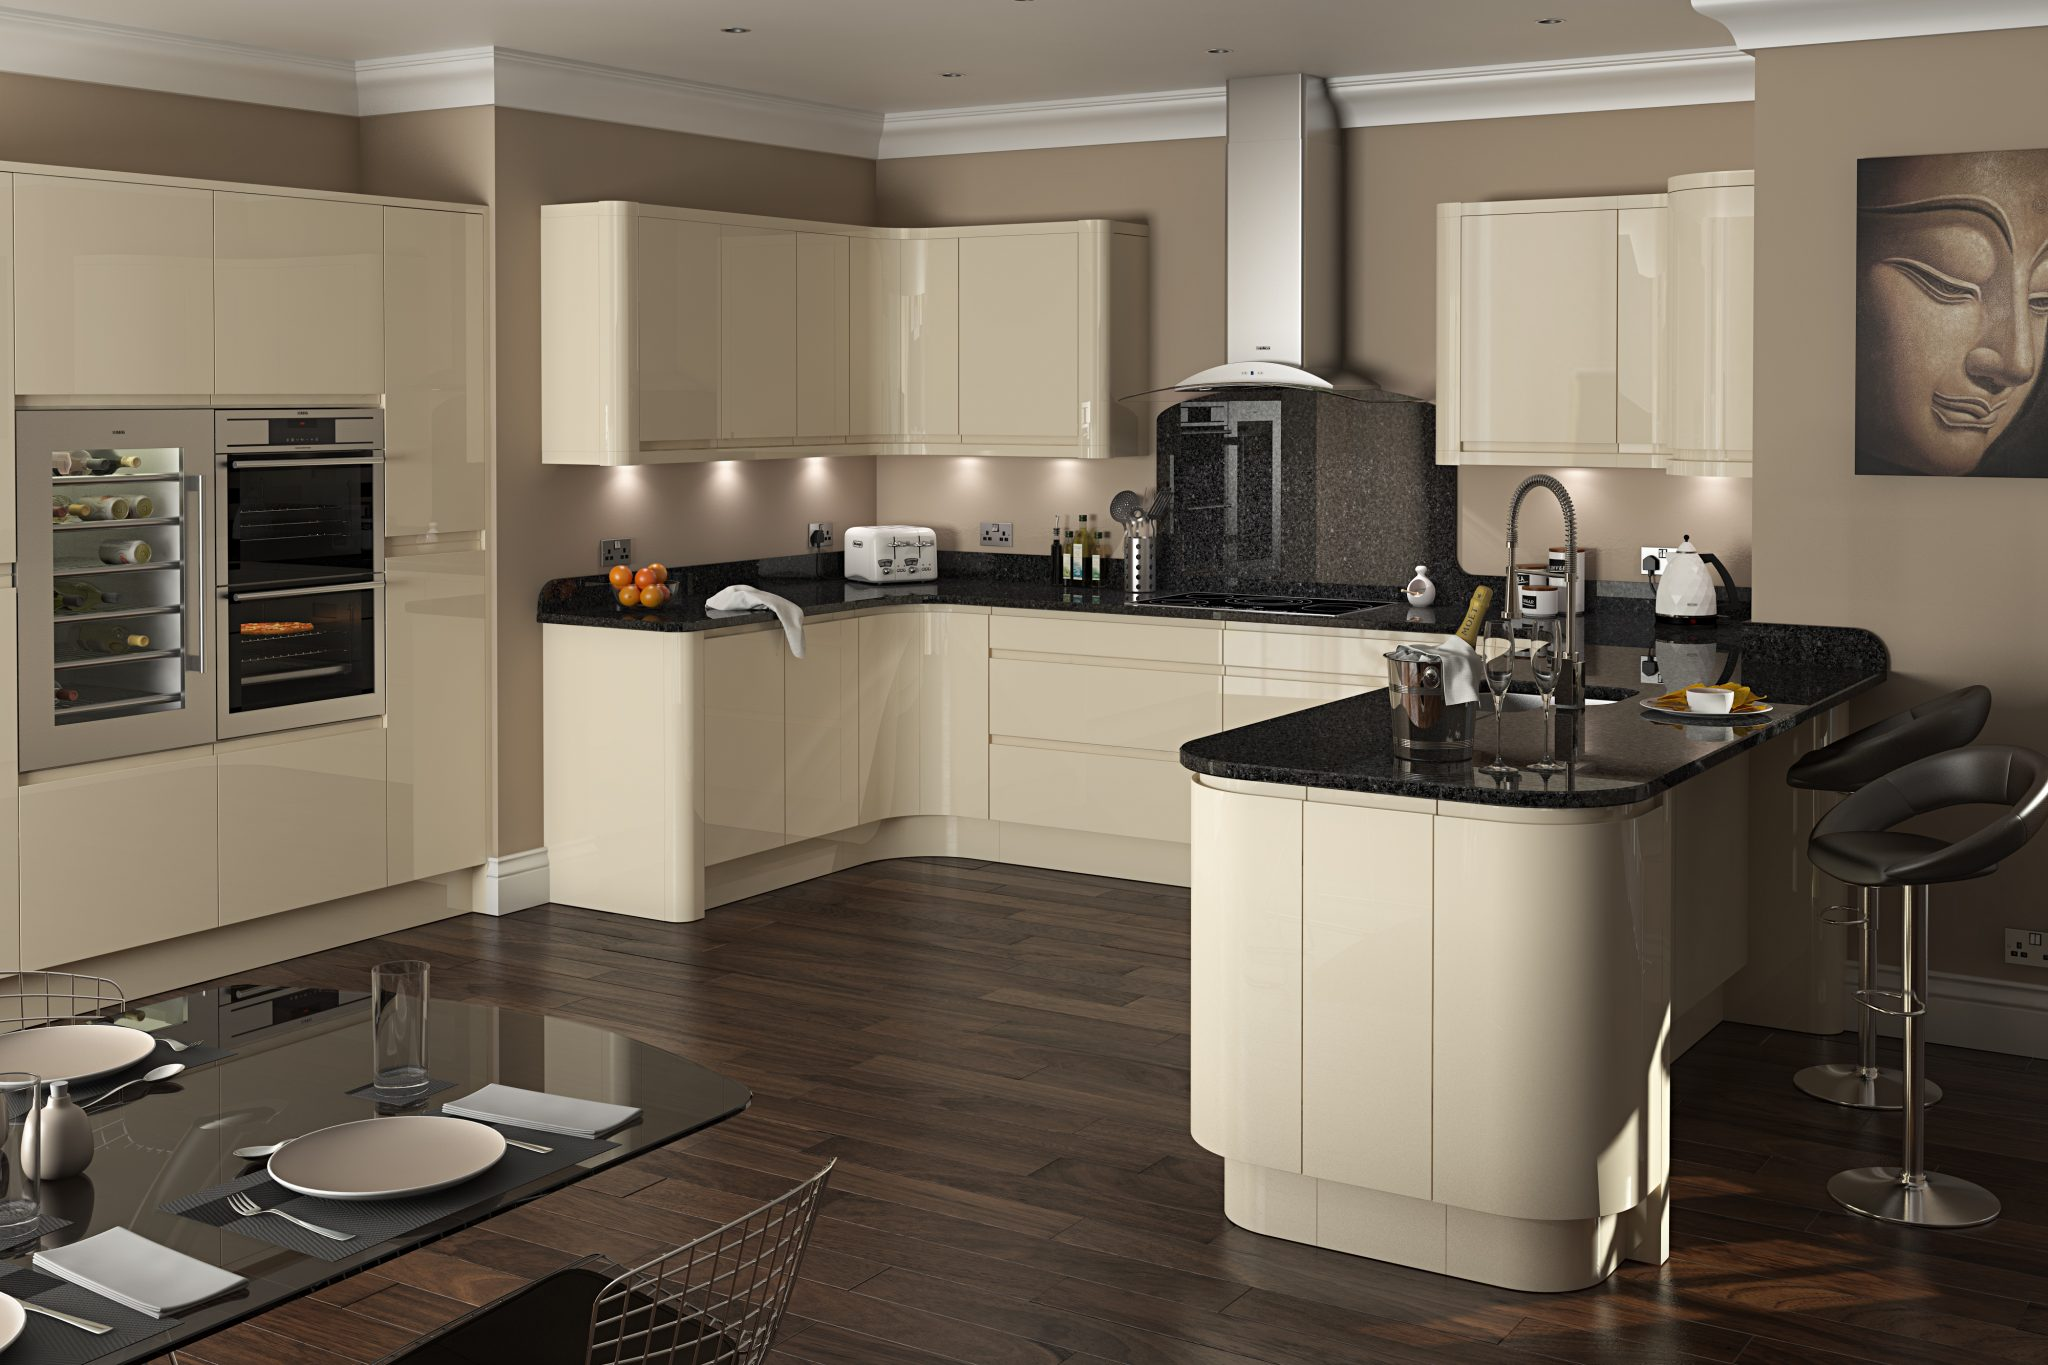 Kitchen design kitchens wirral bespoke luxury designs and ideas wirrals designer specialist - Pics of kitchen designs ...